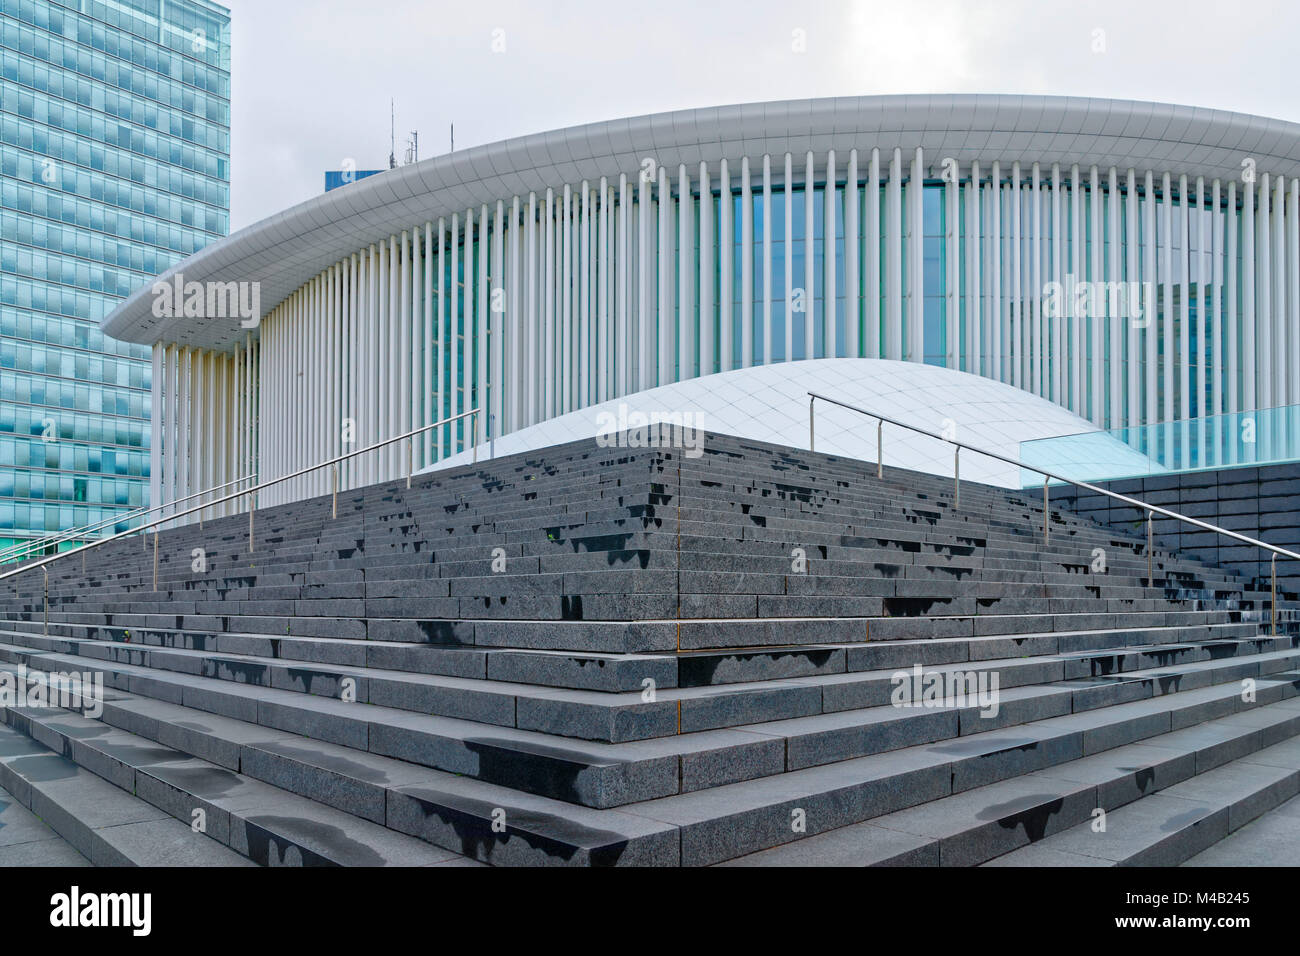 Philharmonic concert hall,European district,Kirchberg plateau,Luxembourg City,Luxembourg - Stock Image